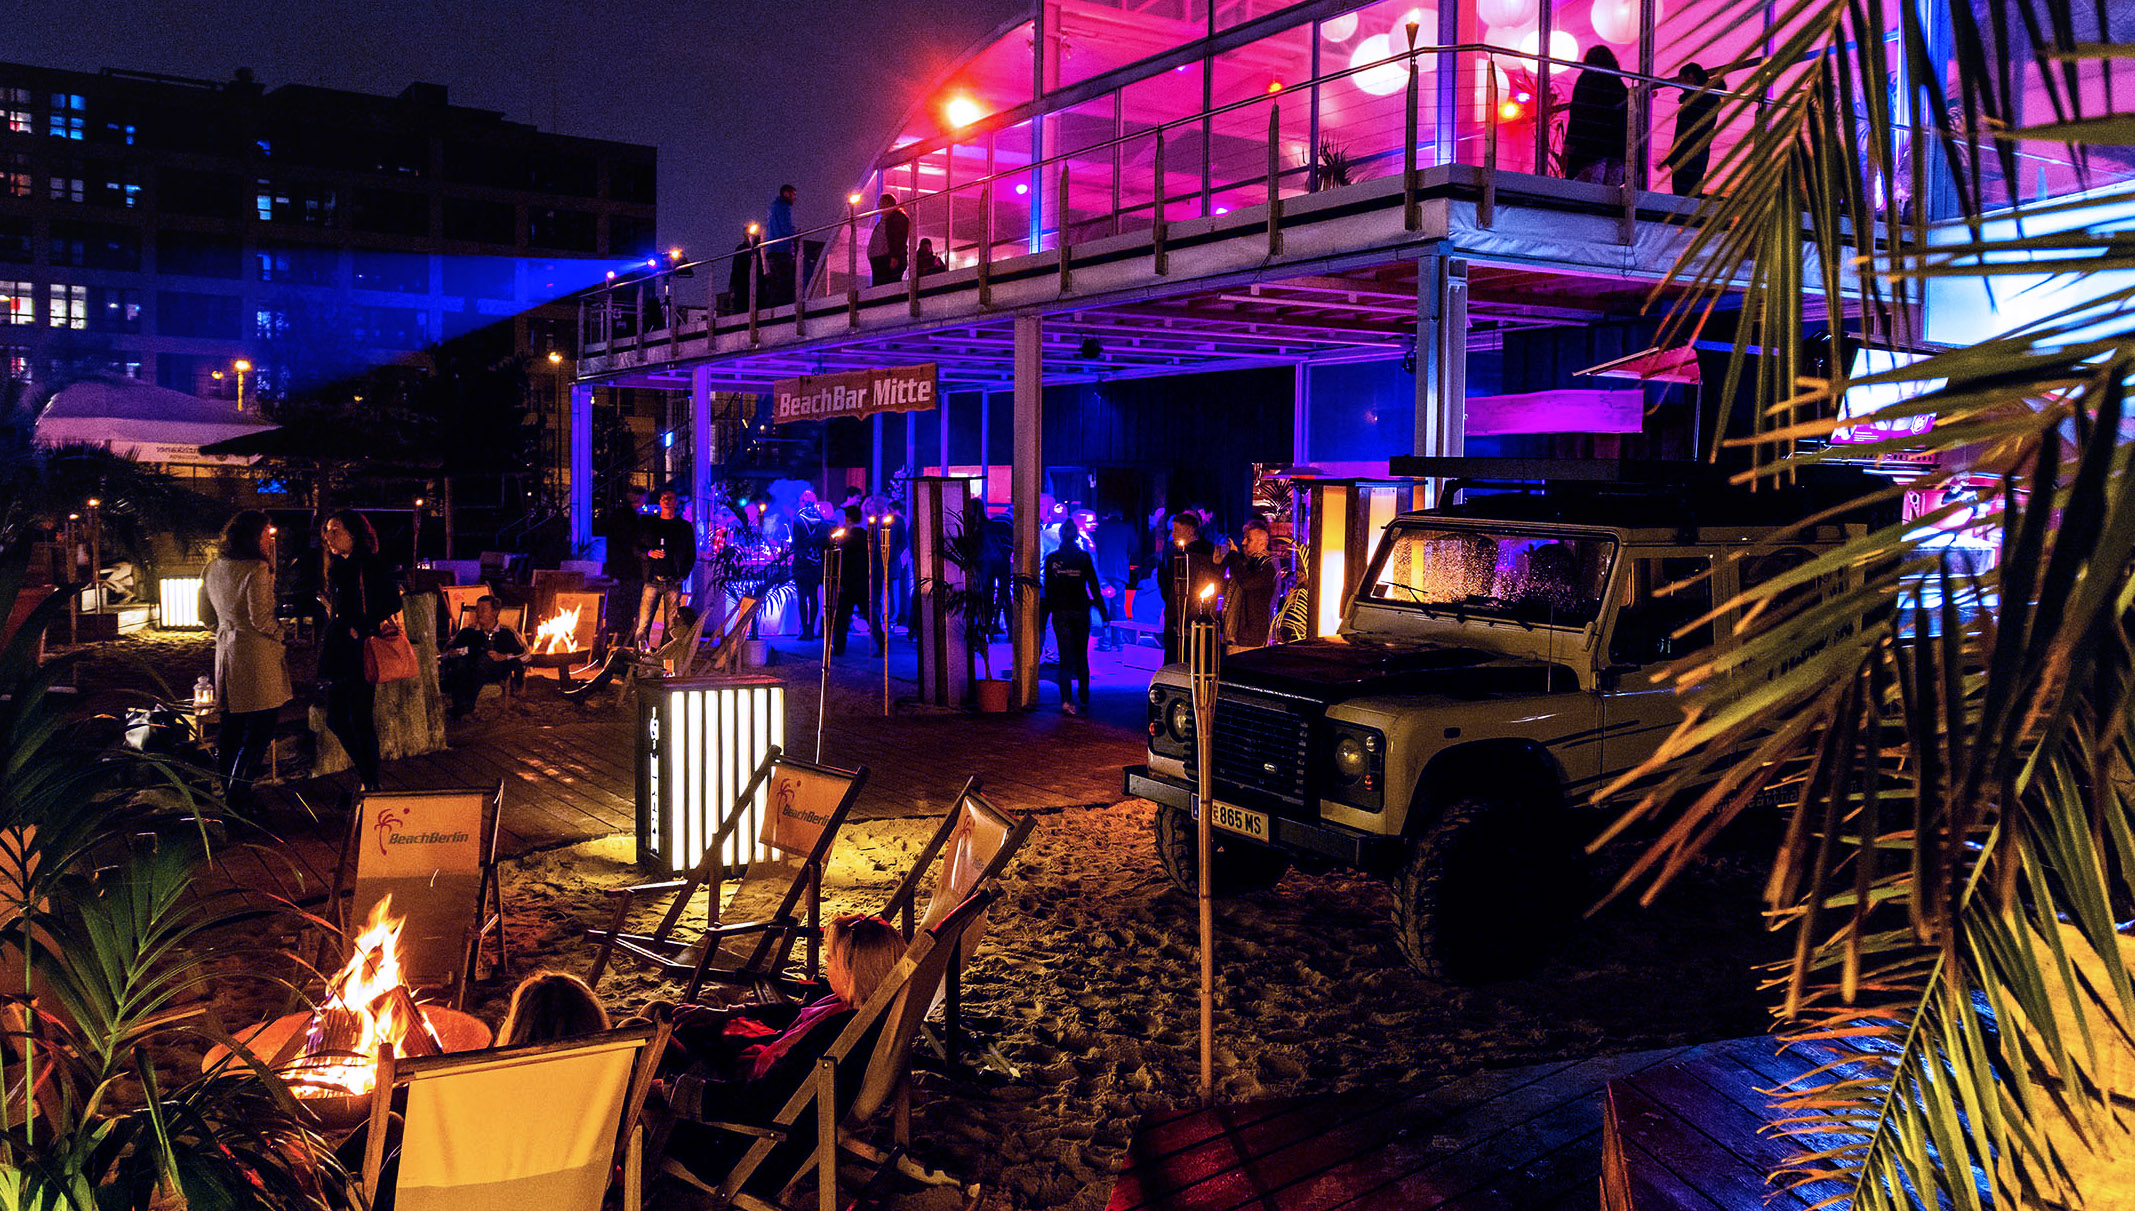 Die Eventlocation BeachMitte in Berlin.